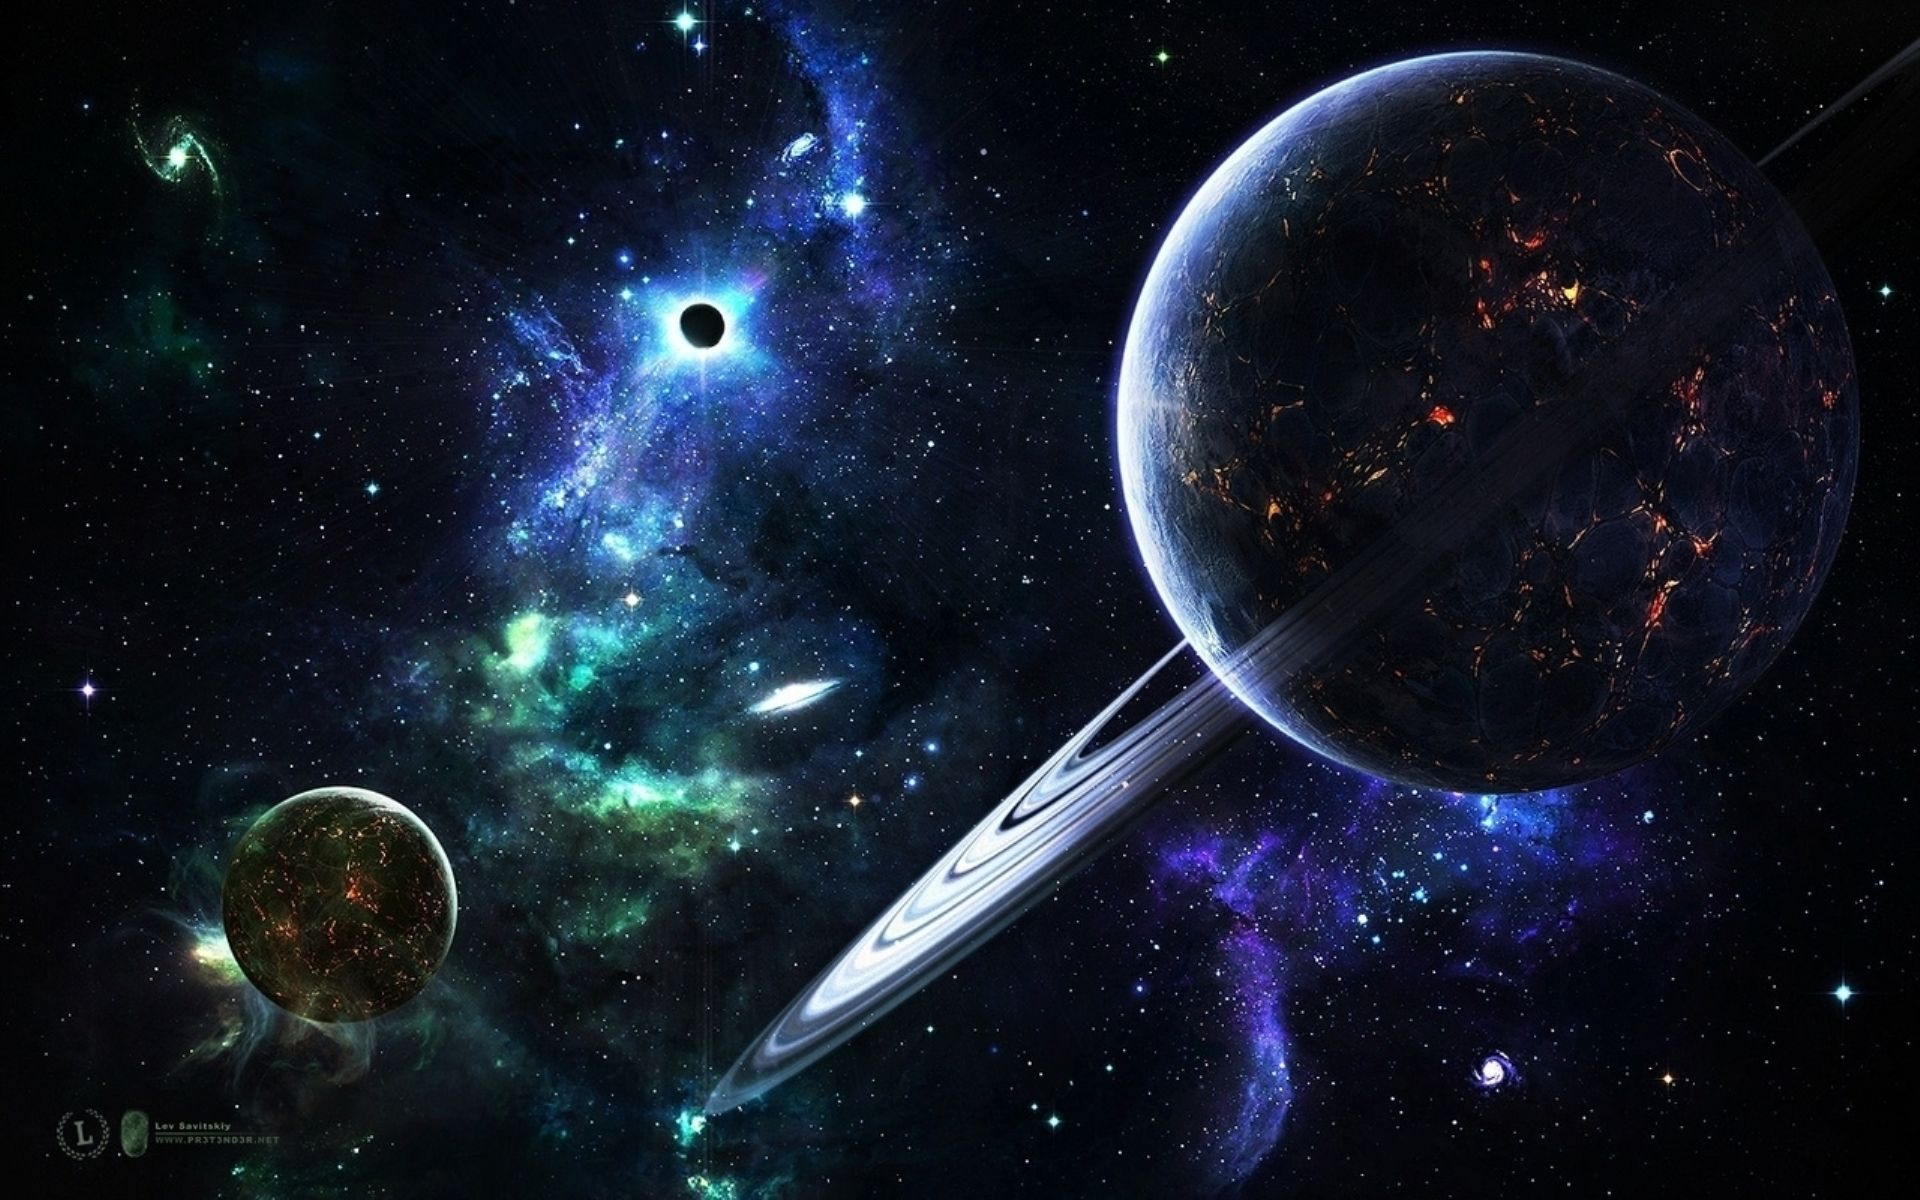 Animated Wallpaper Space Desktop Background Animated Space Wallpaper Space Art Wallpaper Wallpaper Space Outer Space Planets